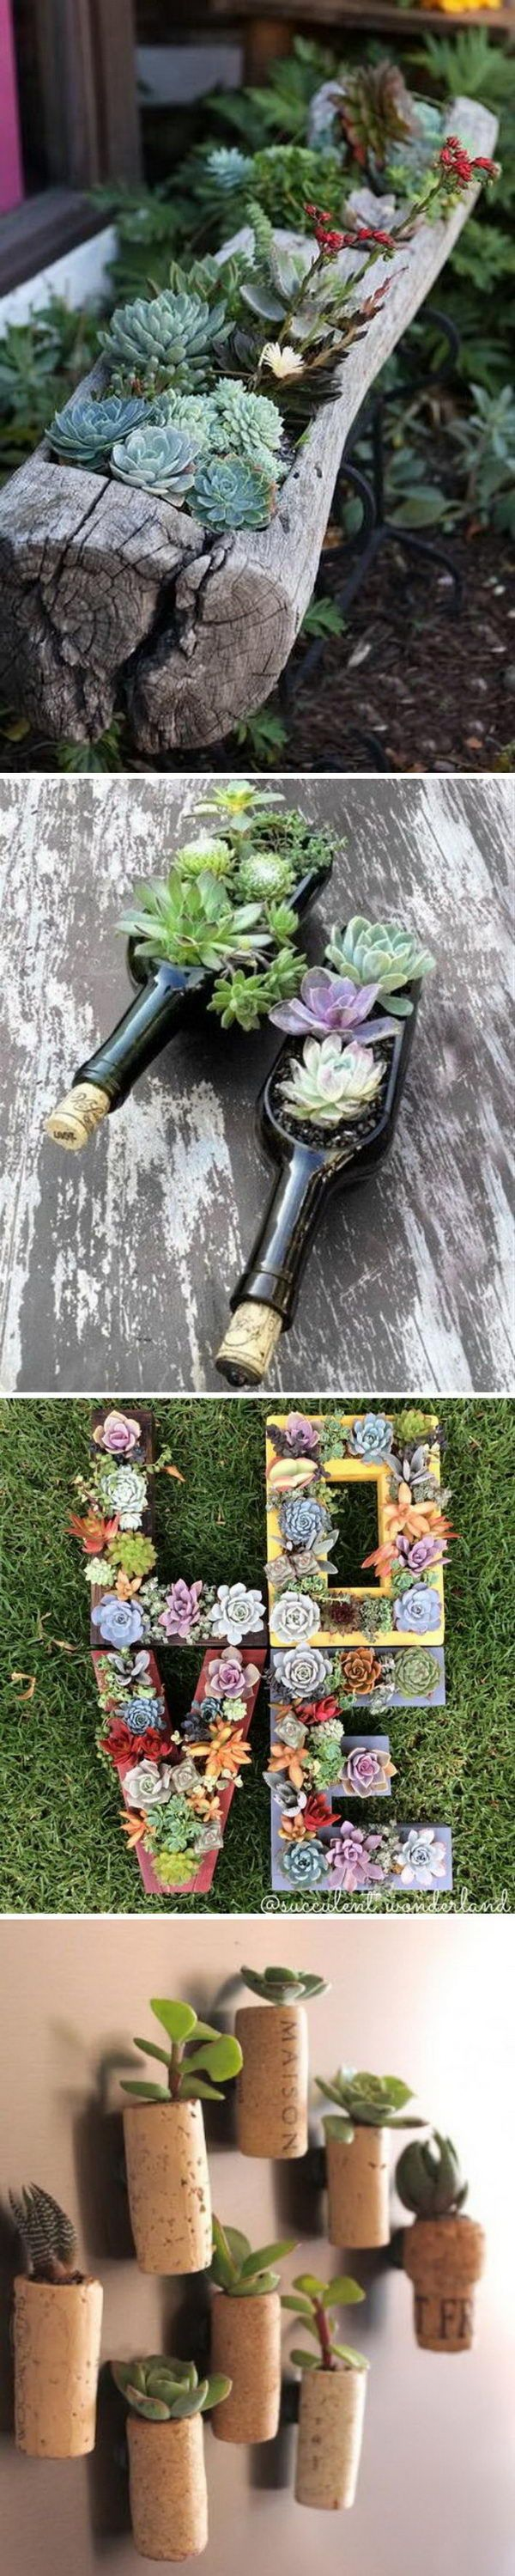 Creative Indoor And Outdoor Succulent Garden Ideas. https://bestproductsfor.com/home